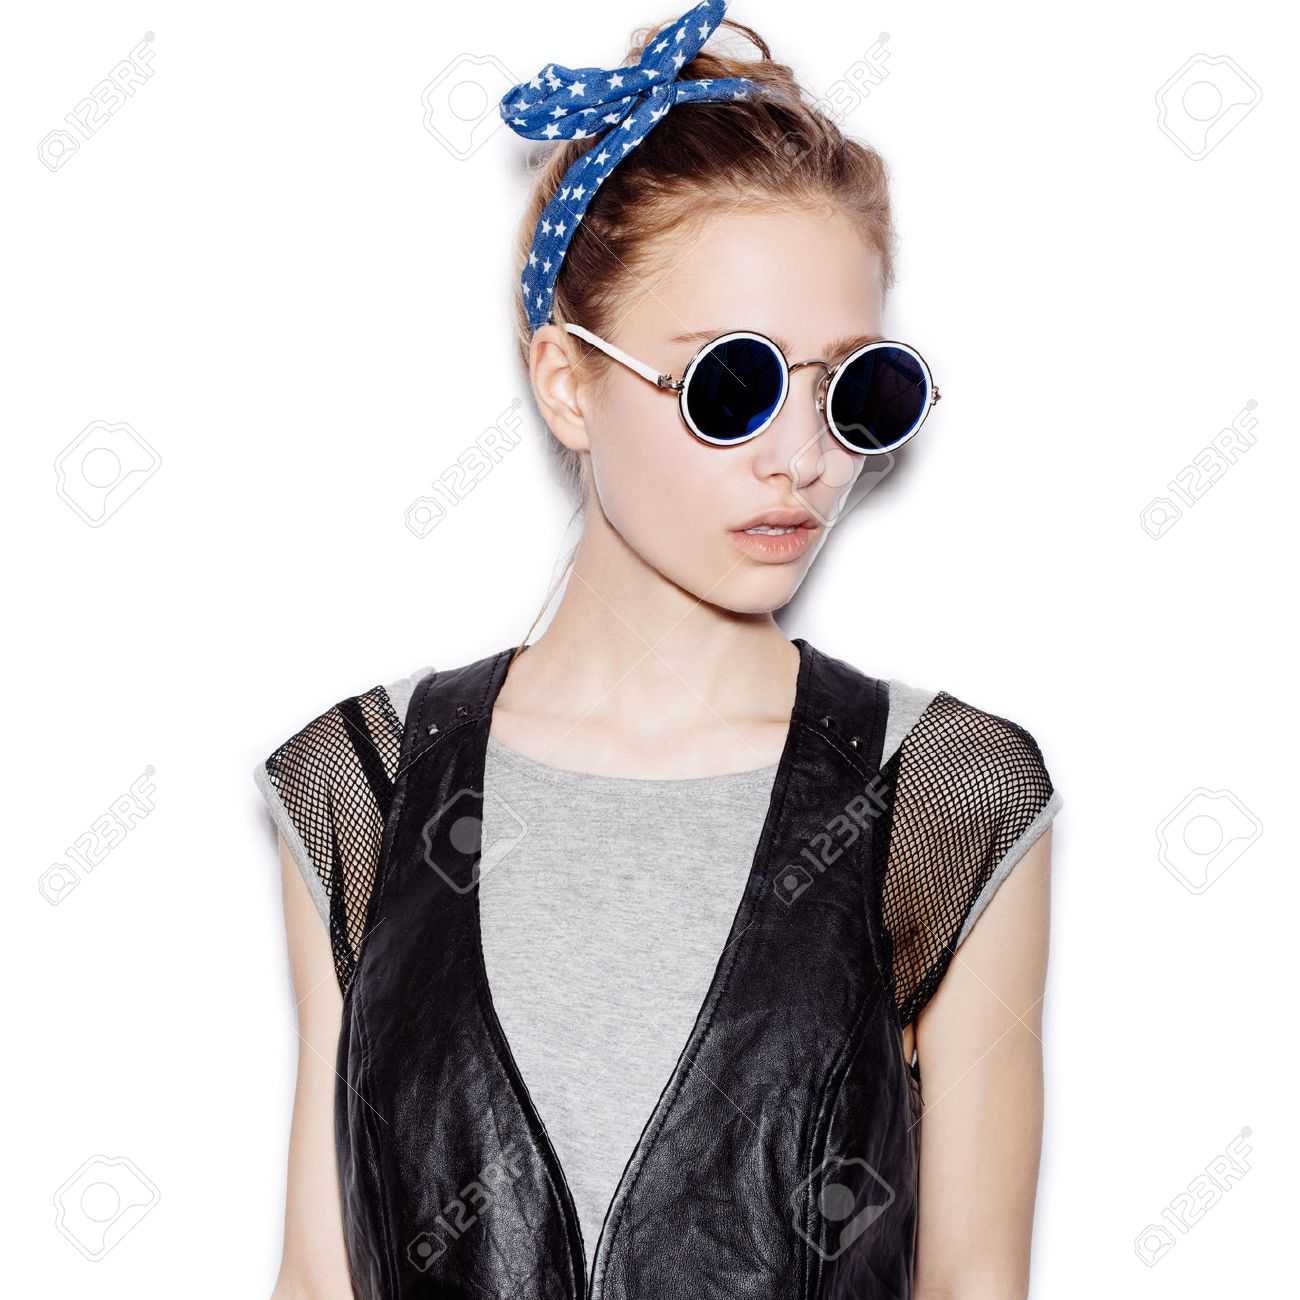 4b39fcb677 Fashion portrait of beautiful girl wearing sunglasses. Close-up of cute  woman on white